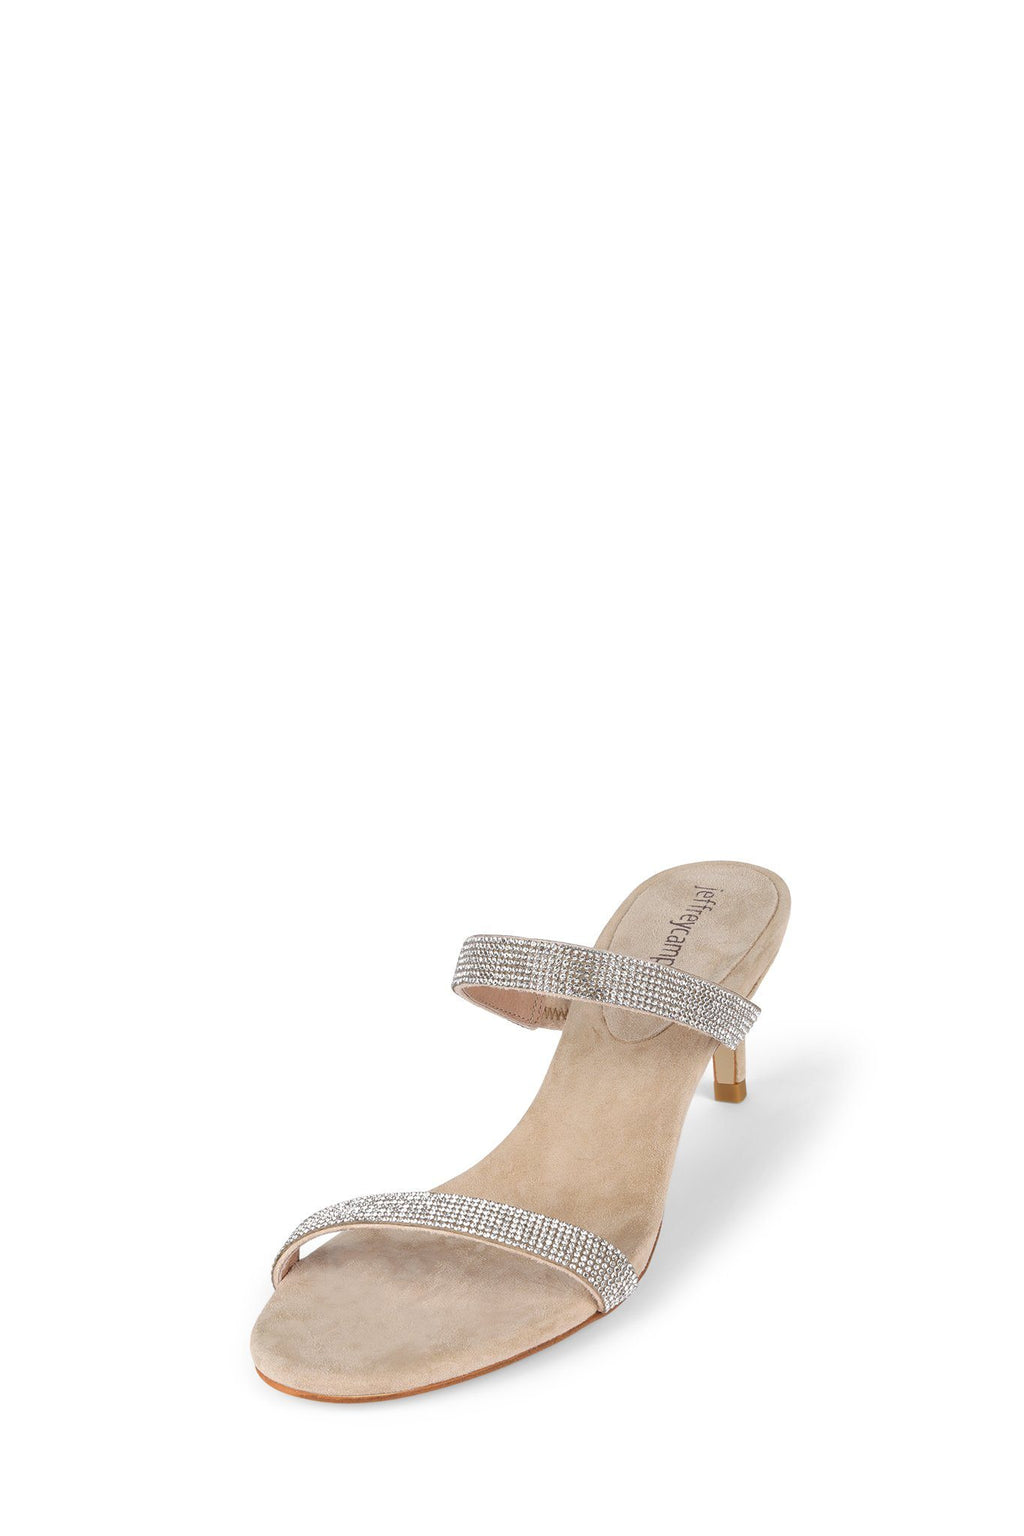 ROYAL Heeled Sandal Jeffrey Campbell